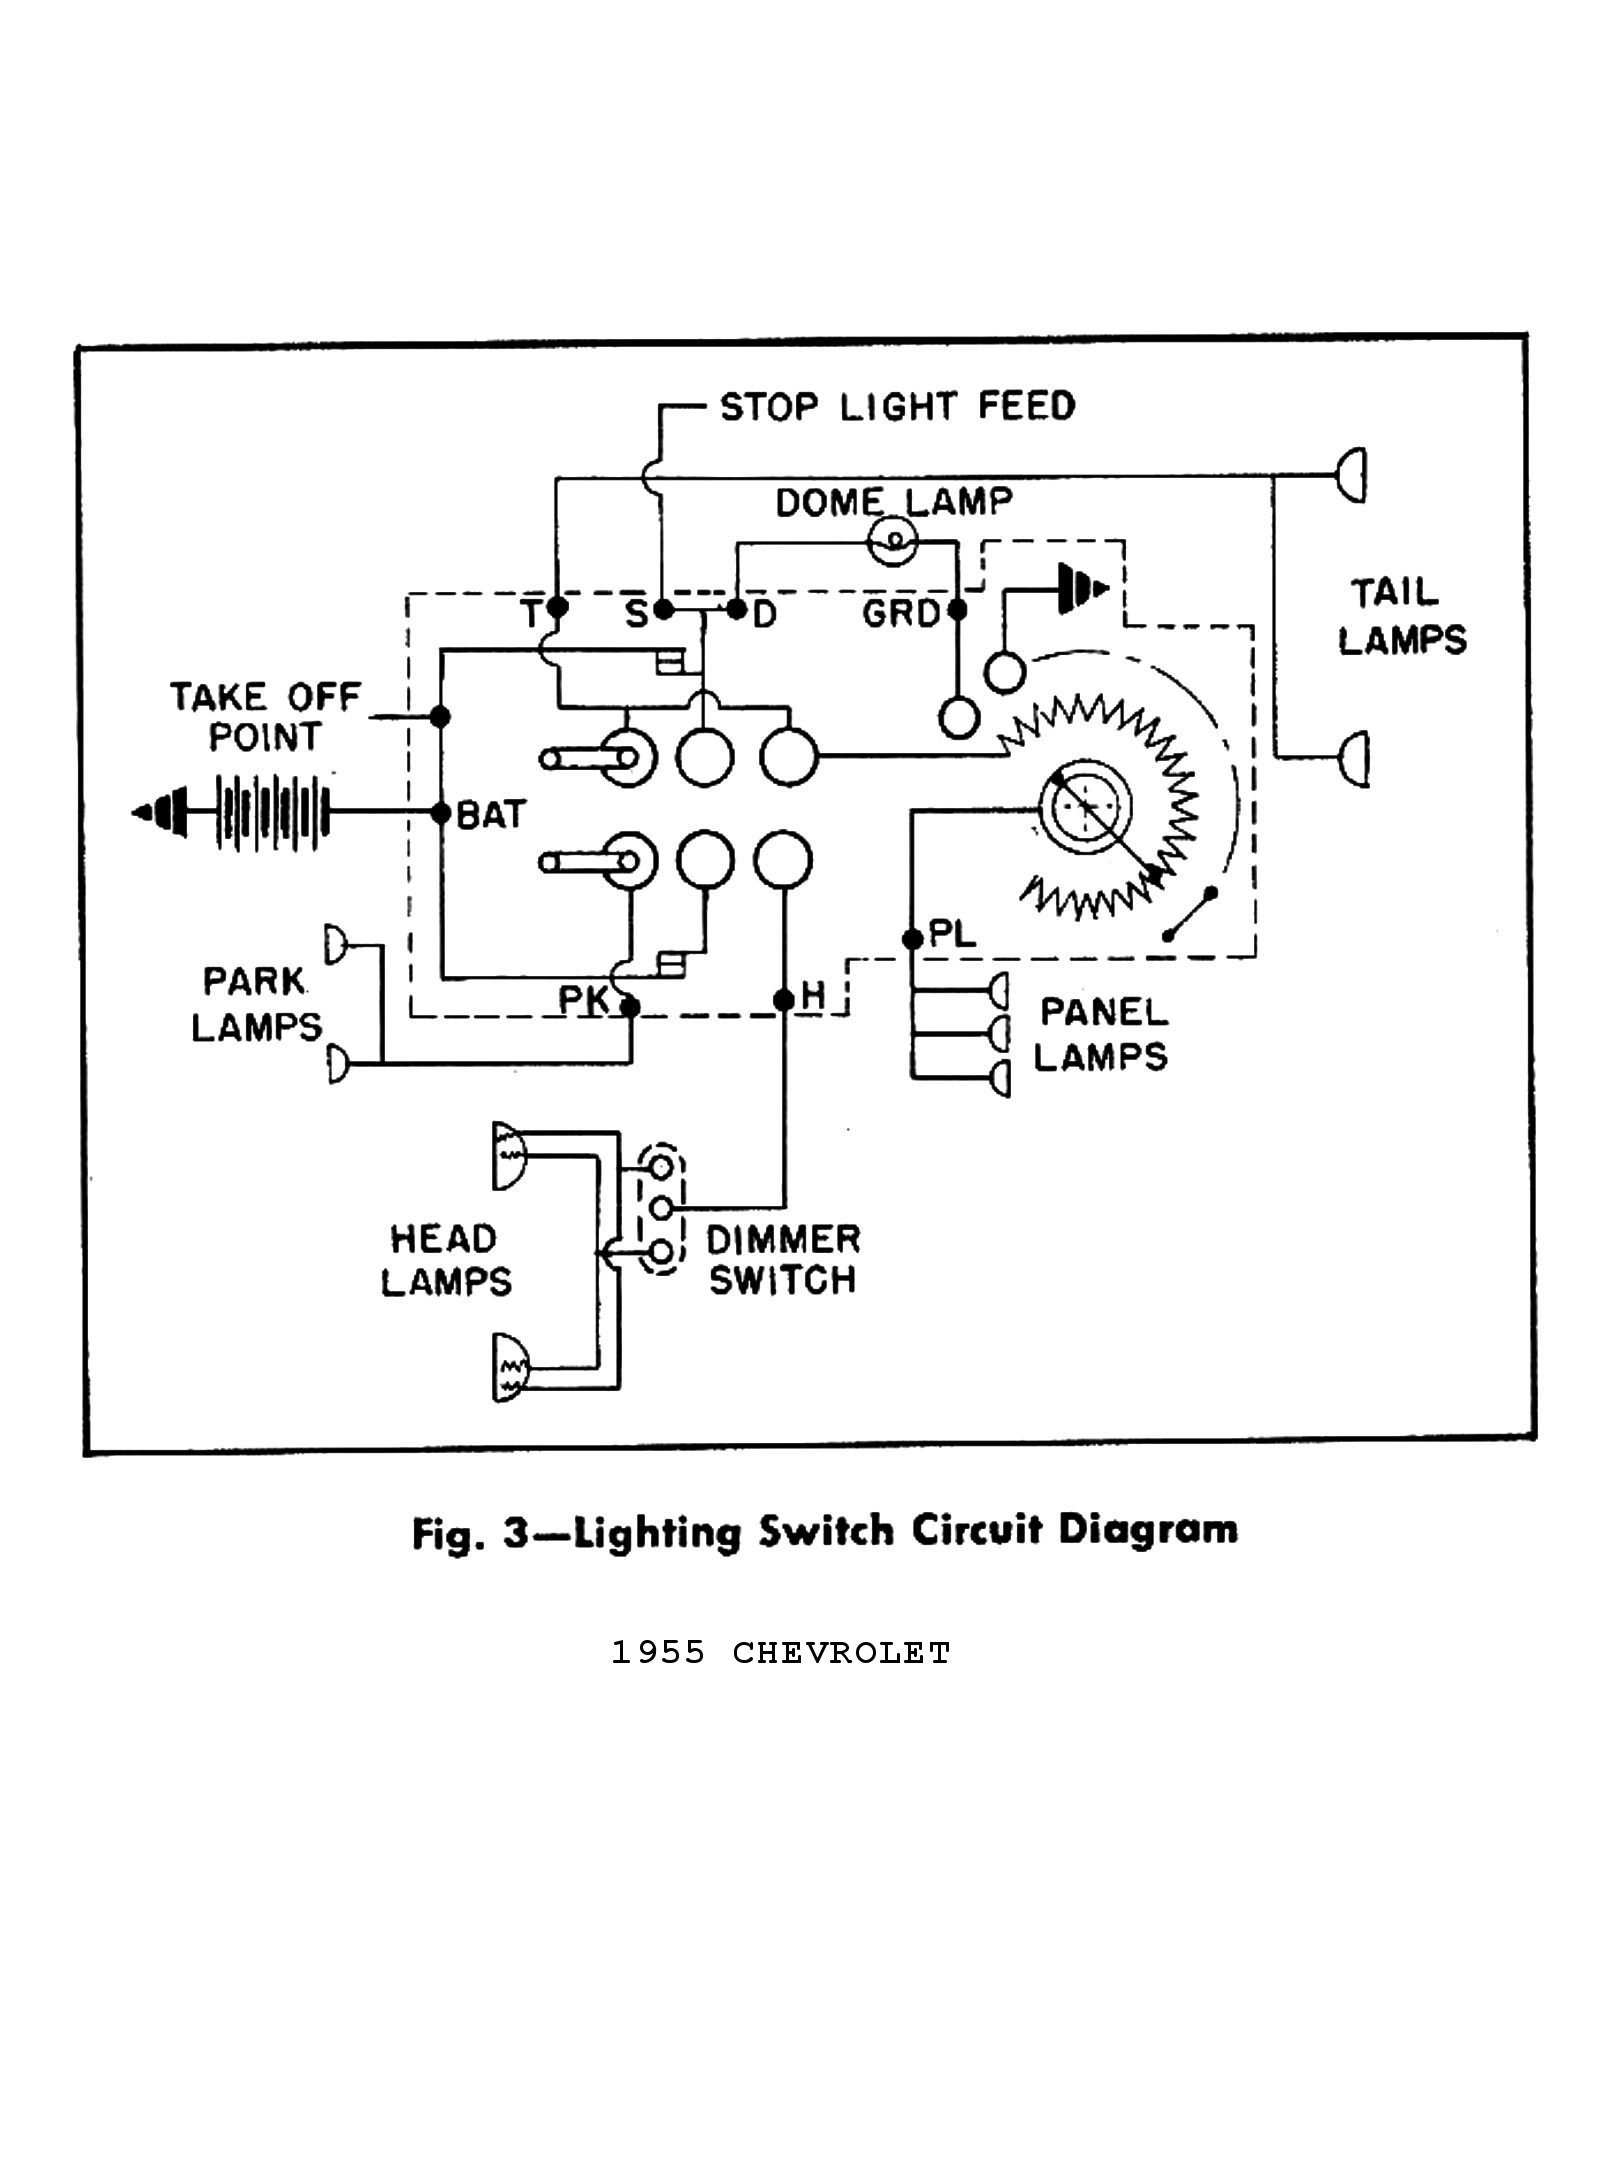 1957 Chevy Wiring Lights Diagram Schemes Chevrolet Silverado Dash Diagrams 1955 Truck Electric Windows